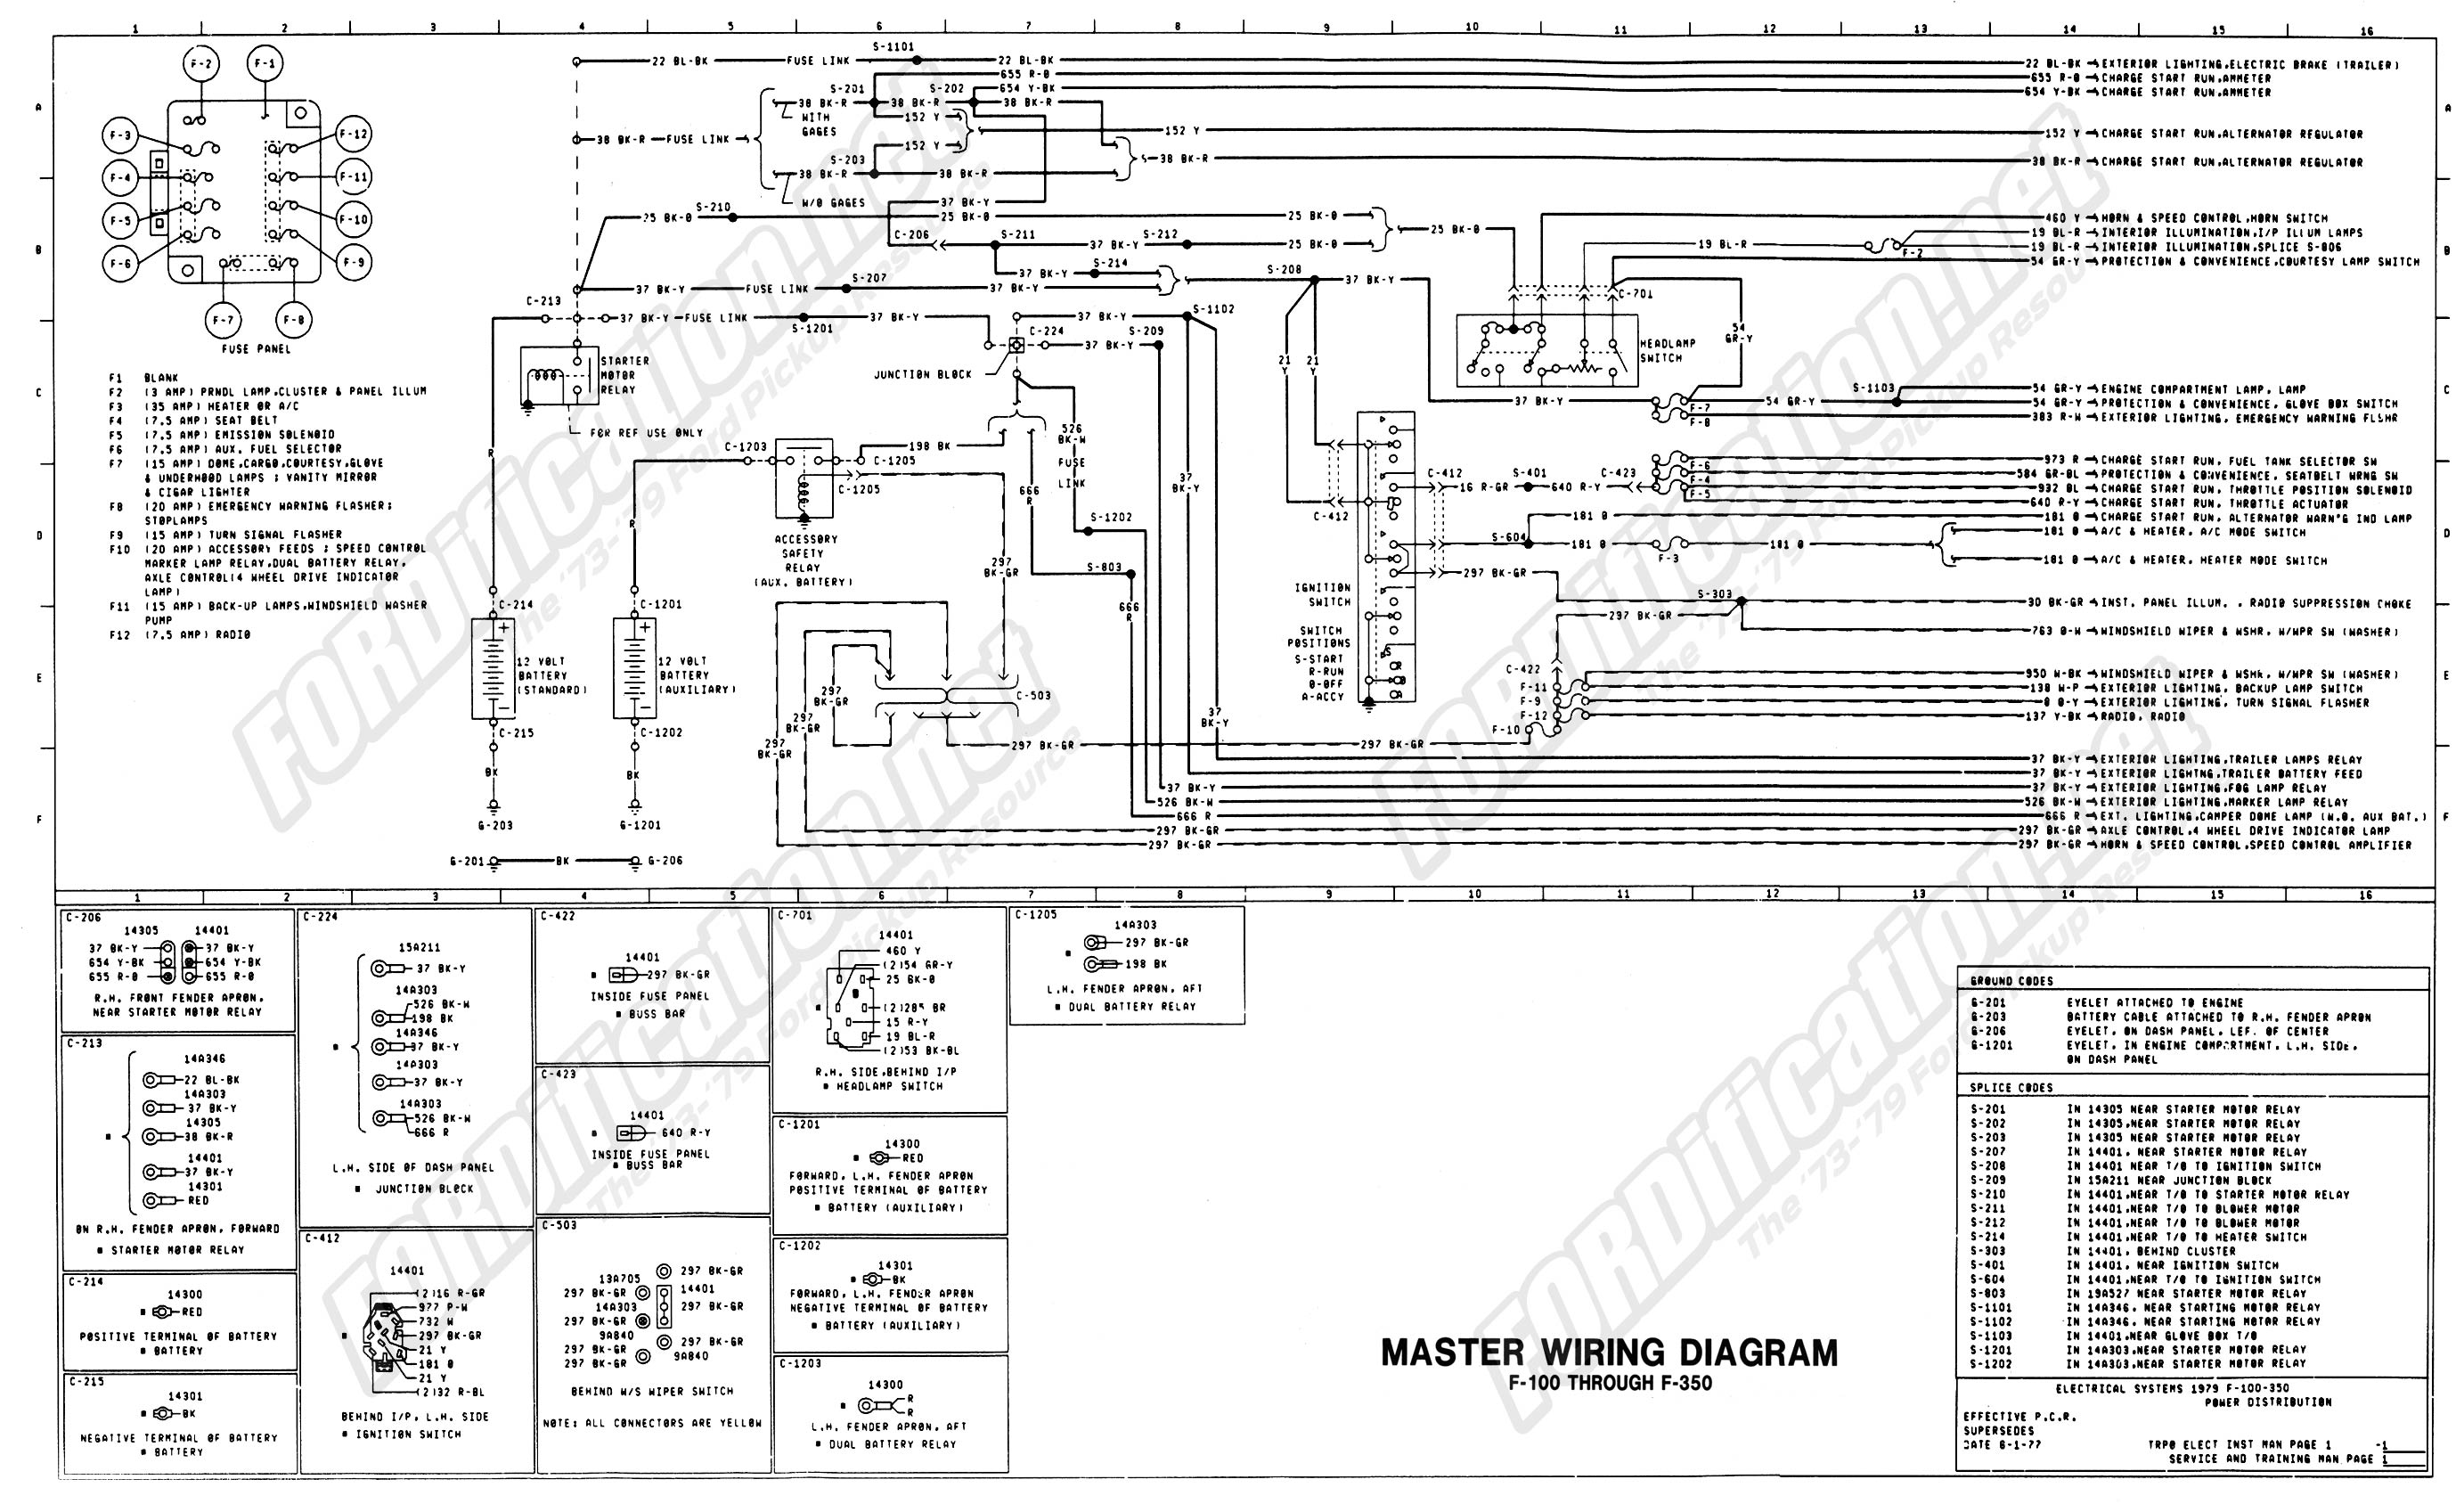 wiring diagram for a 78 ford bronco the wiring diagram 1979 f100 ignition switch wiring diagram positions ford truck wiring diagram